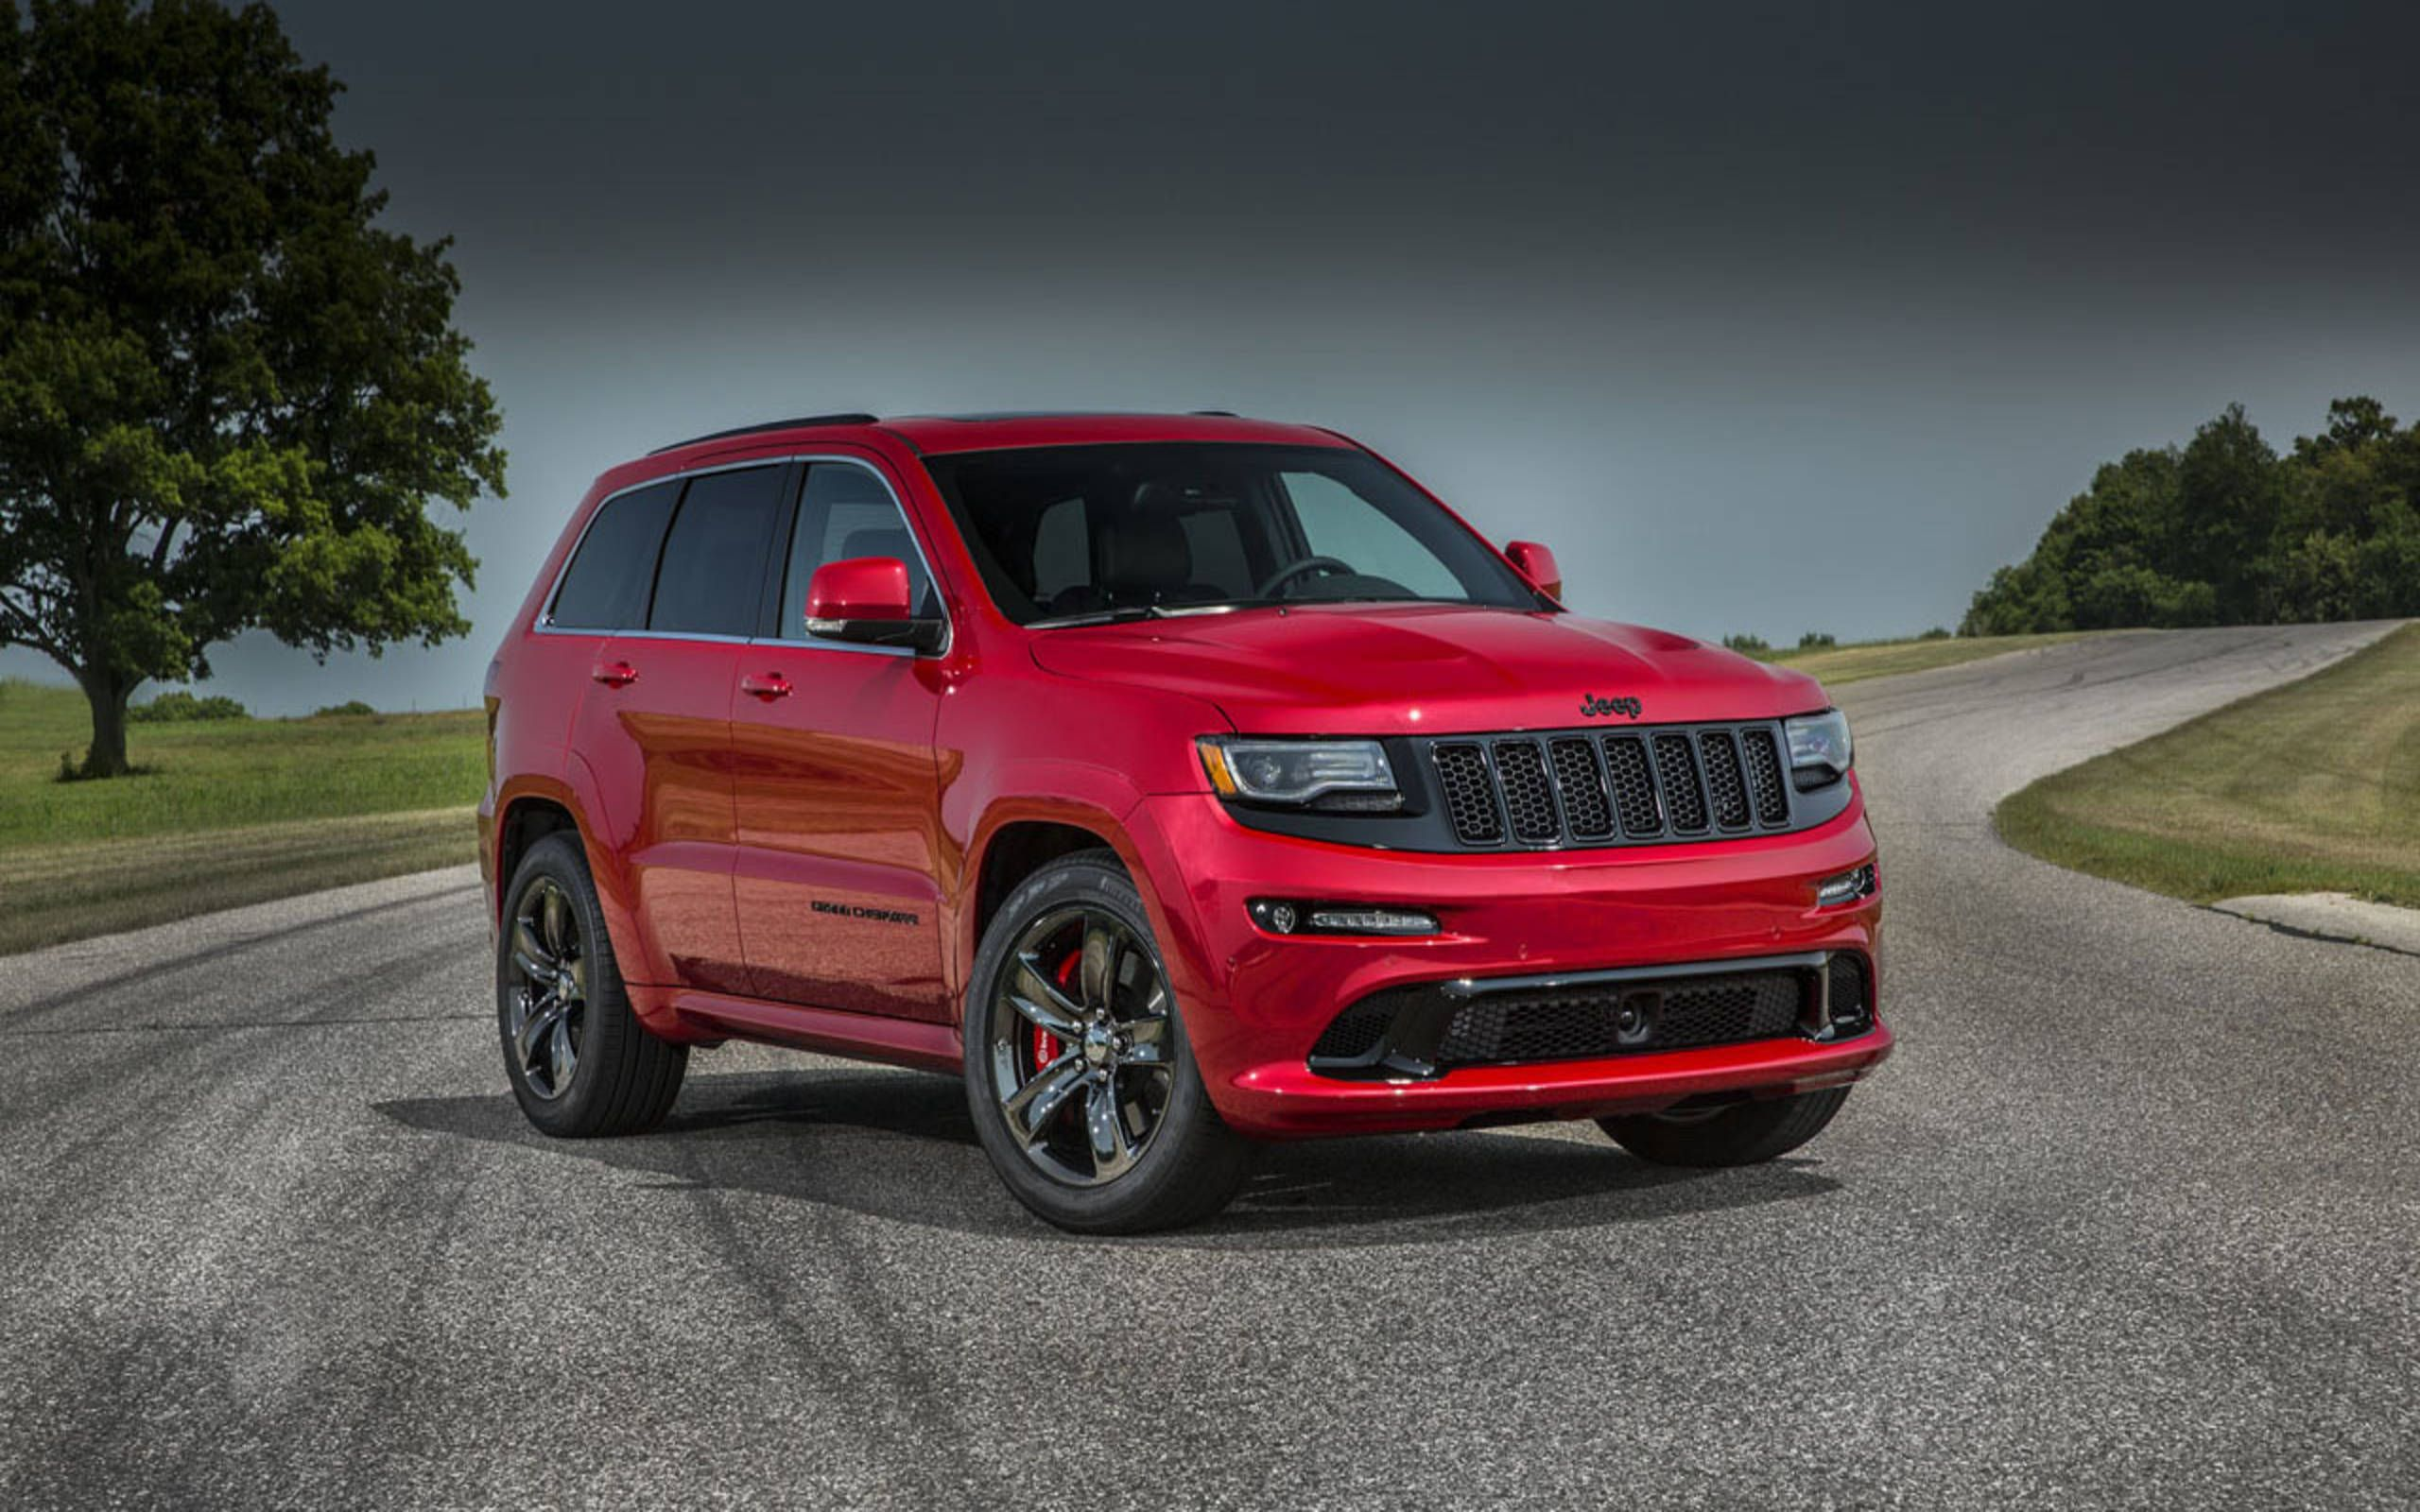 Jeep Grand Cherokee Srt Gets A Power Bump For 2015